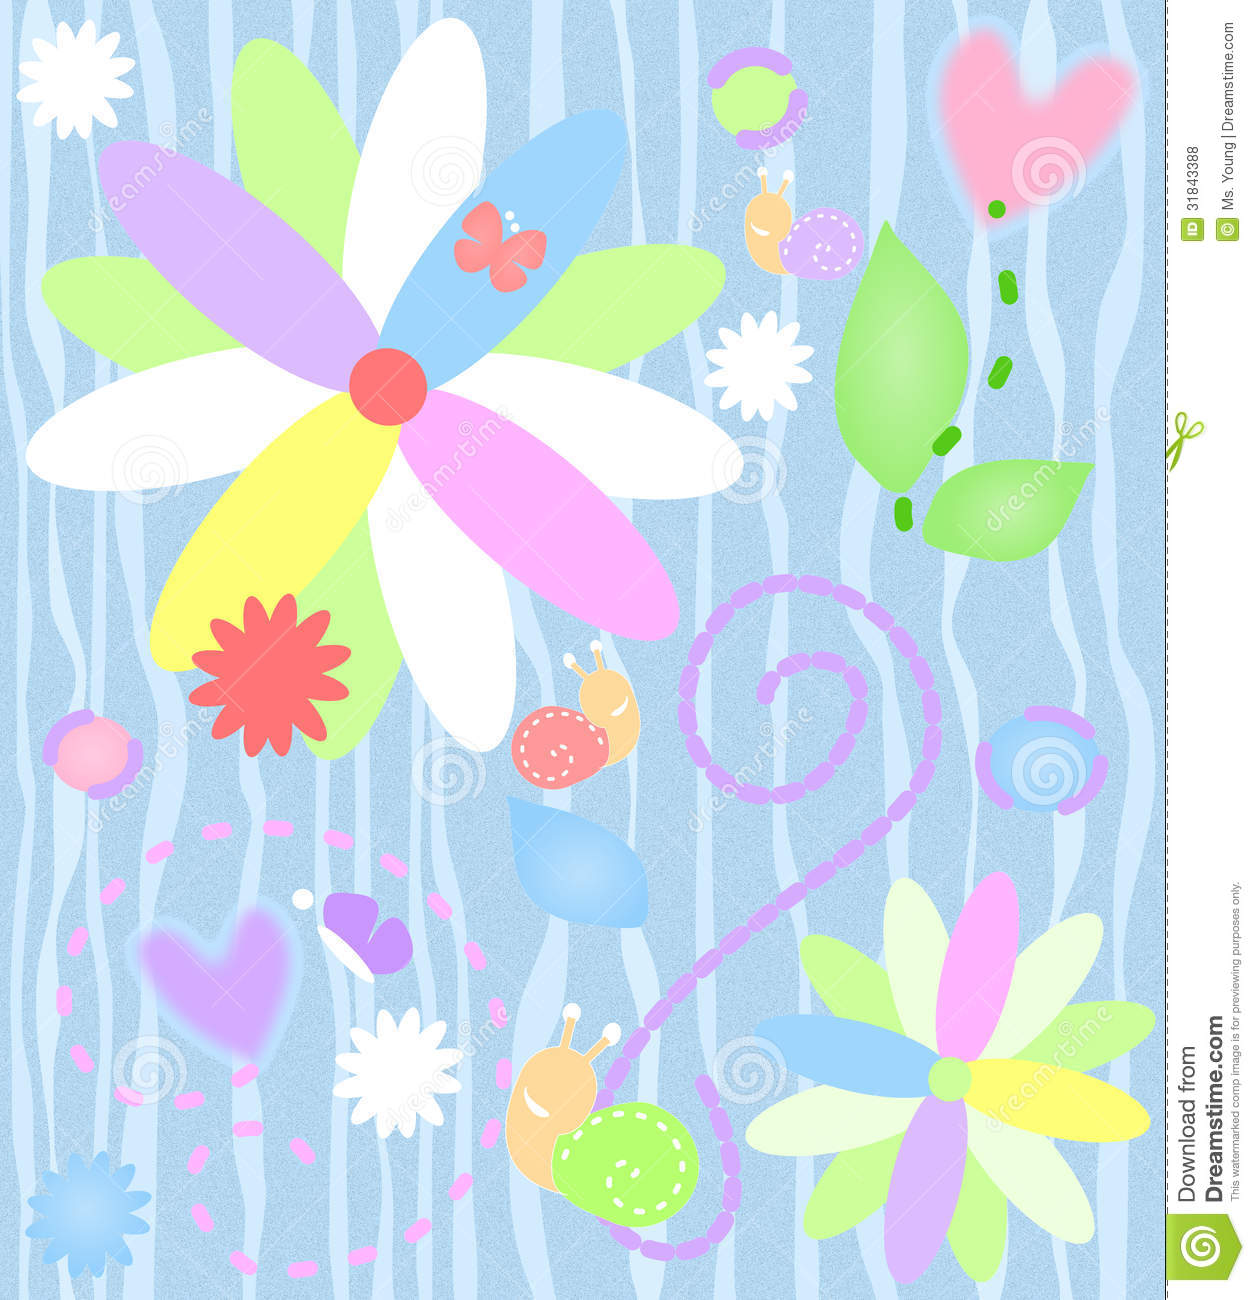 Whimsical Background R...Clipart Flowers And Butterflies Border